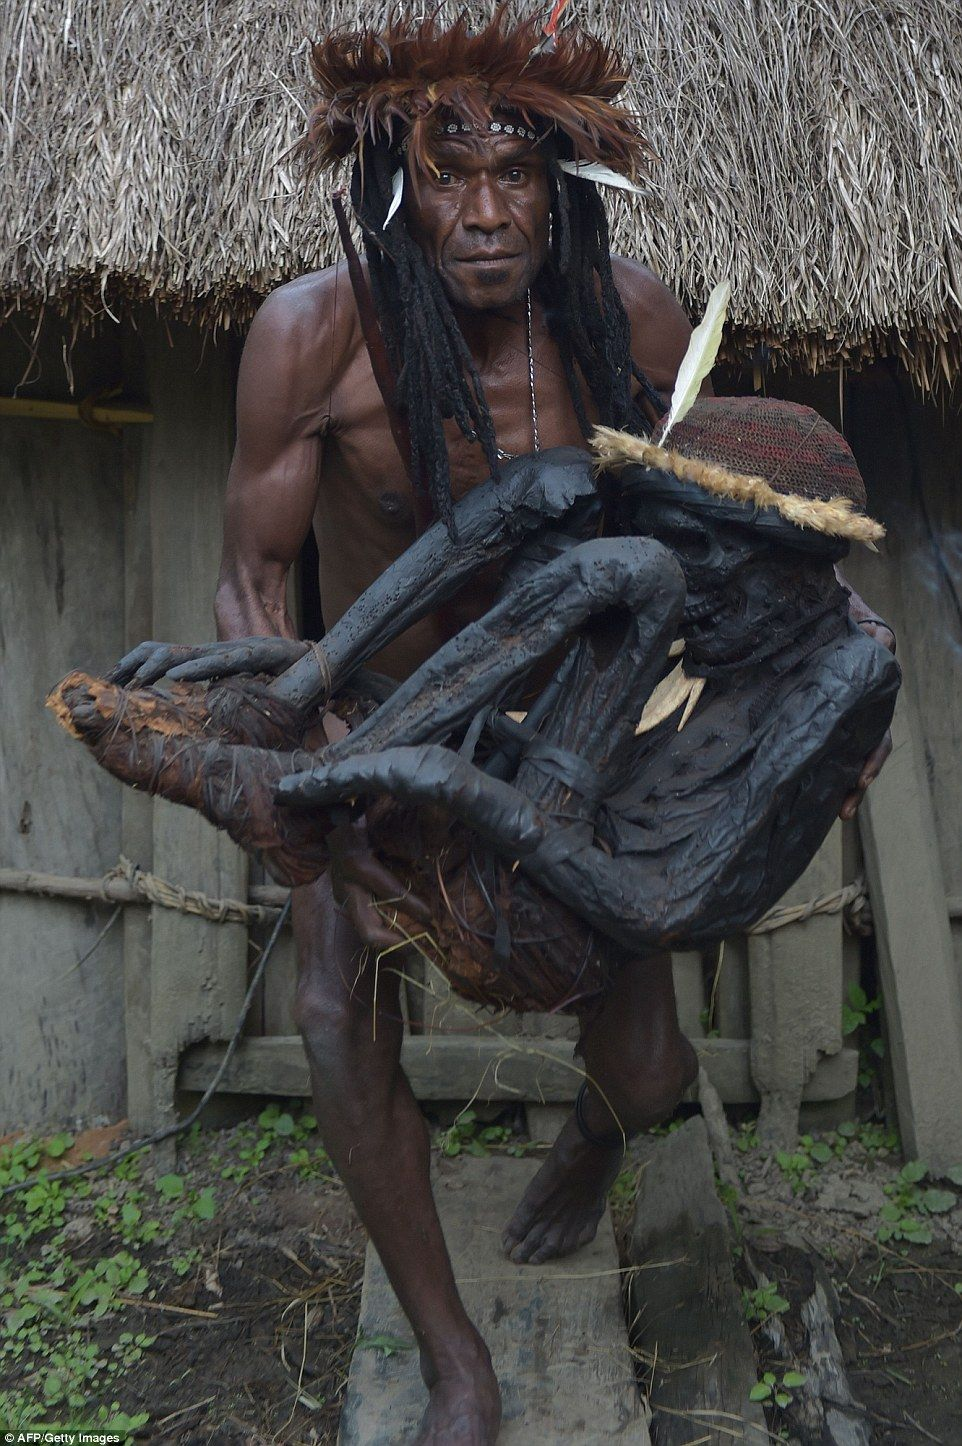 Dani tribe chief Eli Mabel is pictured holding the remains of Agat Mamete Mabel in the village of Wogi in Wamena in West Papua, an island in the centre of Papua New Guinea. The indigenous tribe, who live in a remote area of the Papuan central highlands, used to preserve their ancestors by smoking their bodies, which kept them in a near-perfect state for hundreds of years.